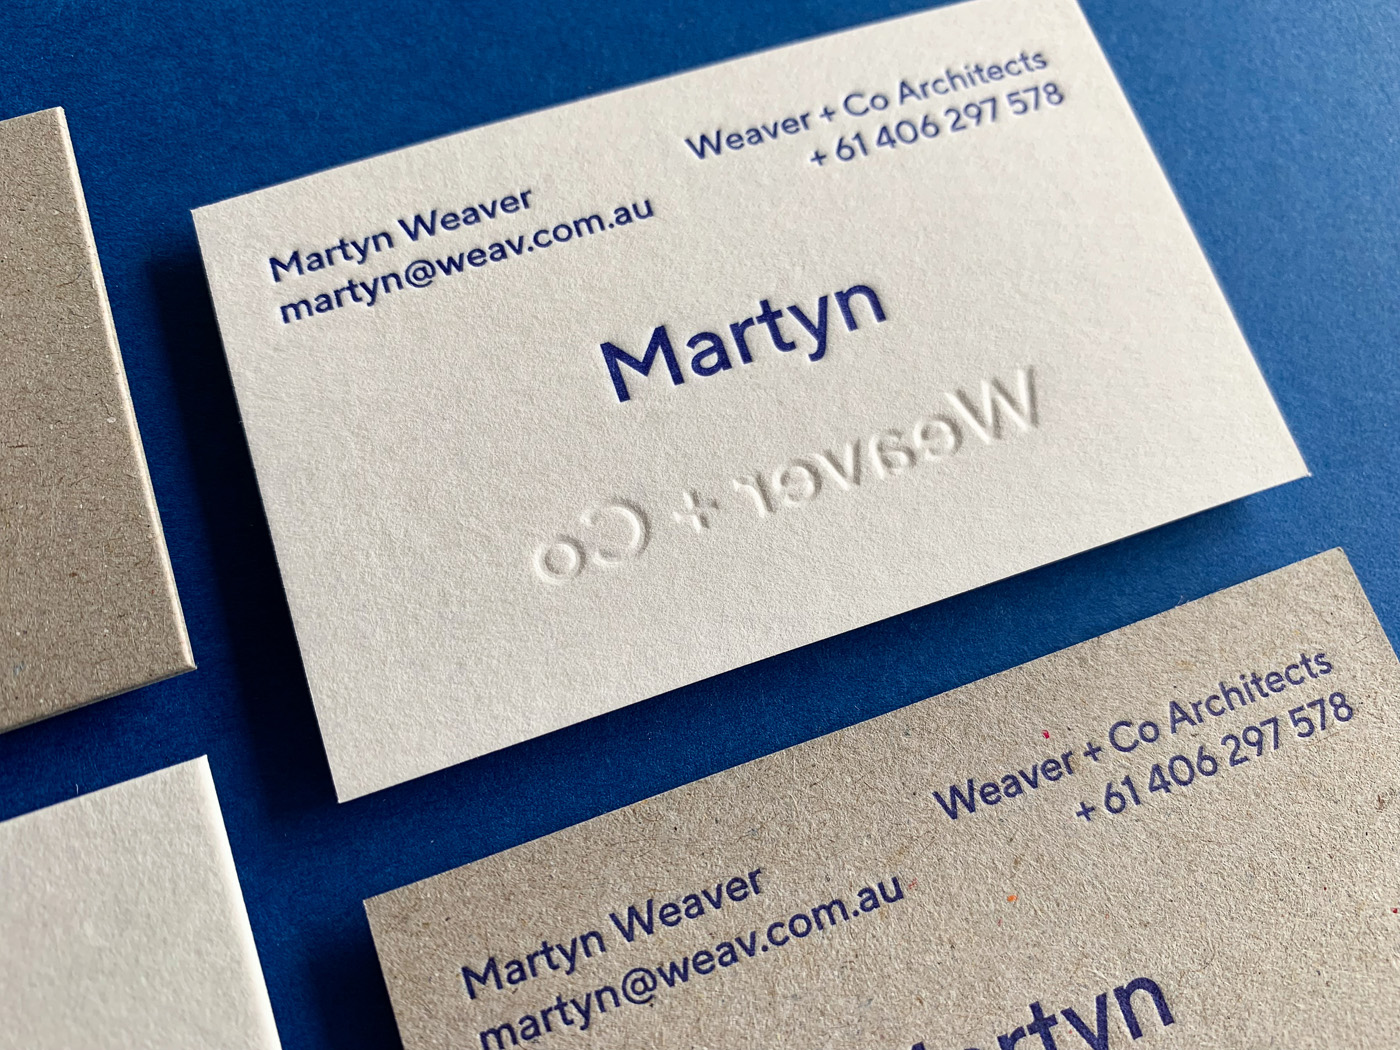 Letter pressed business cards for Martyn Weaver Co on Boxboard and Wild 4